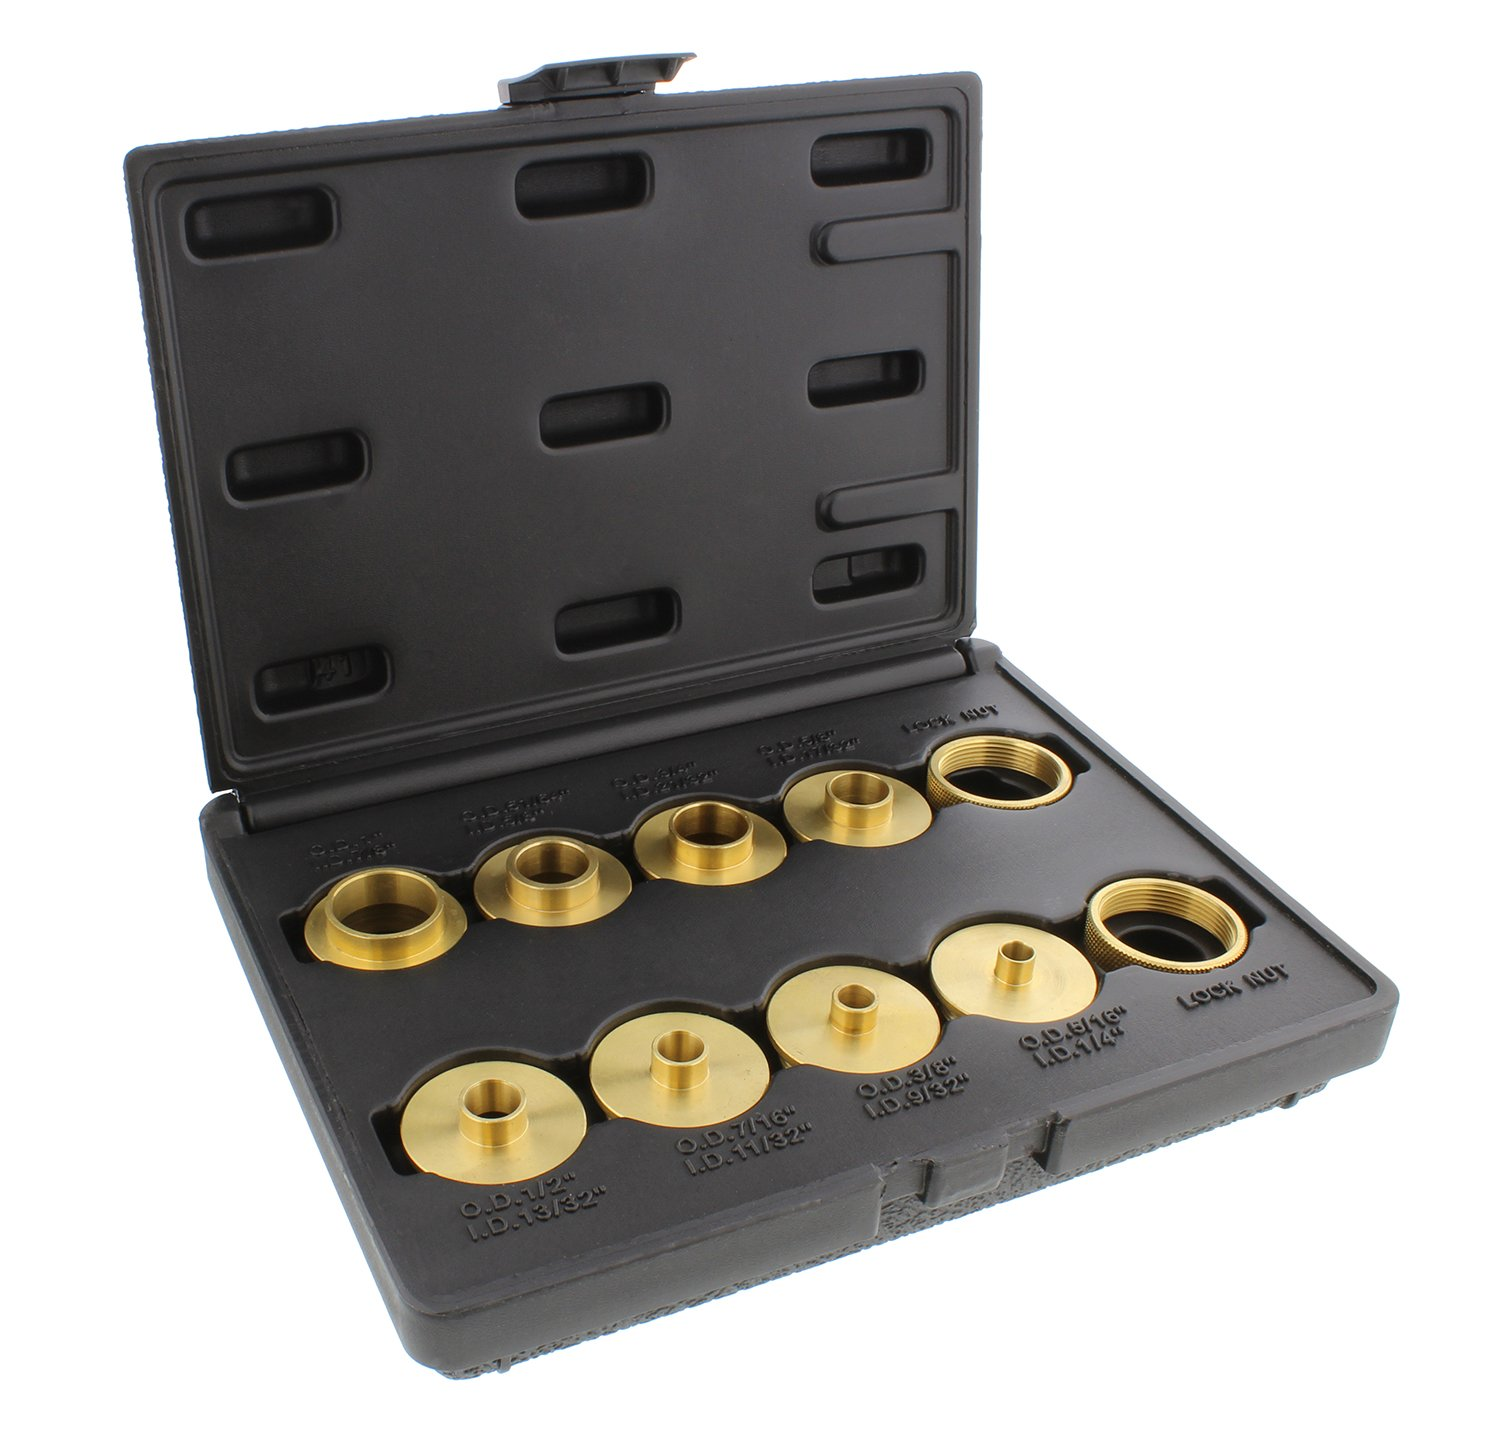 dct brass router template guides bushing 8 piece set 2 bonus lock